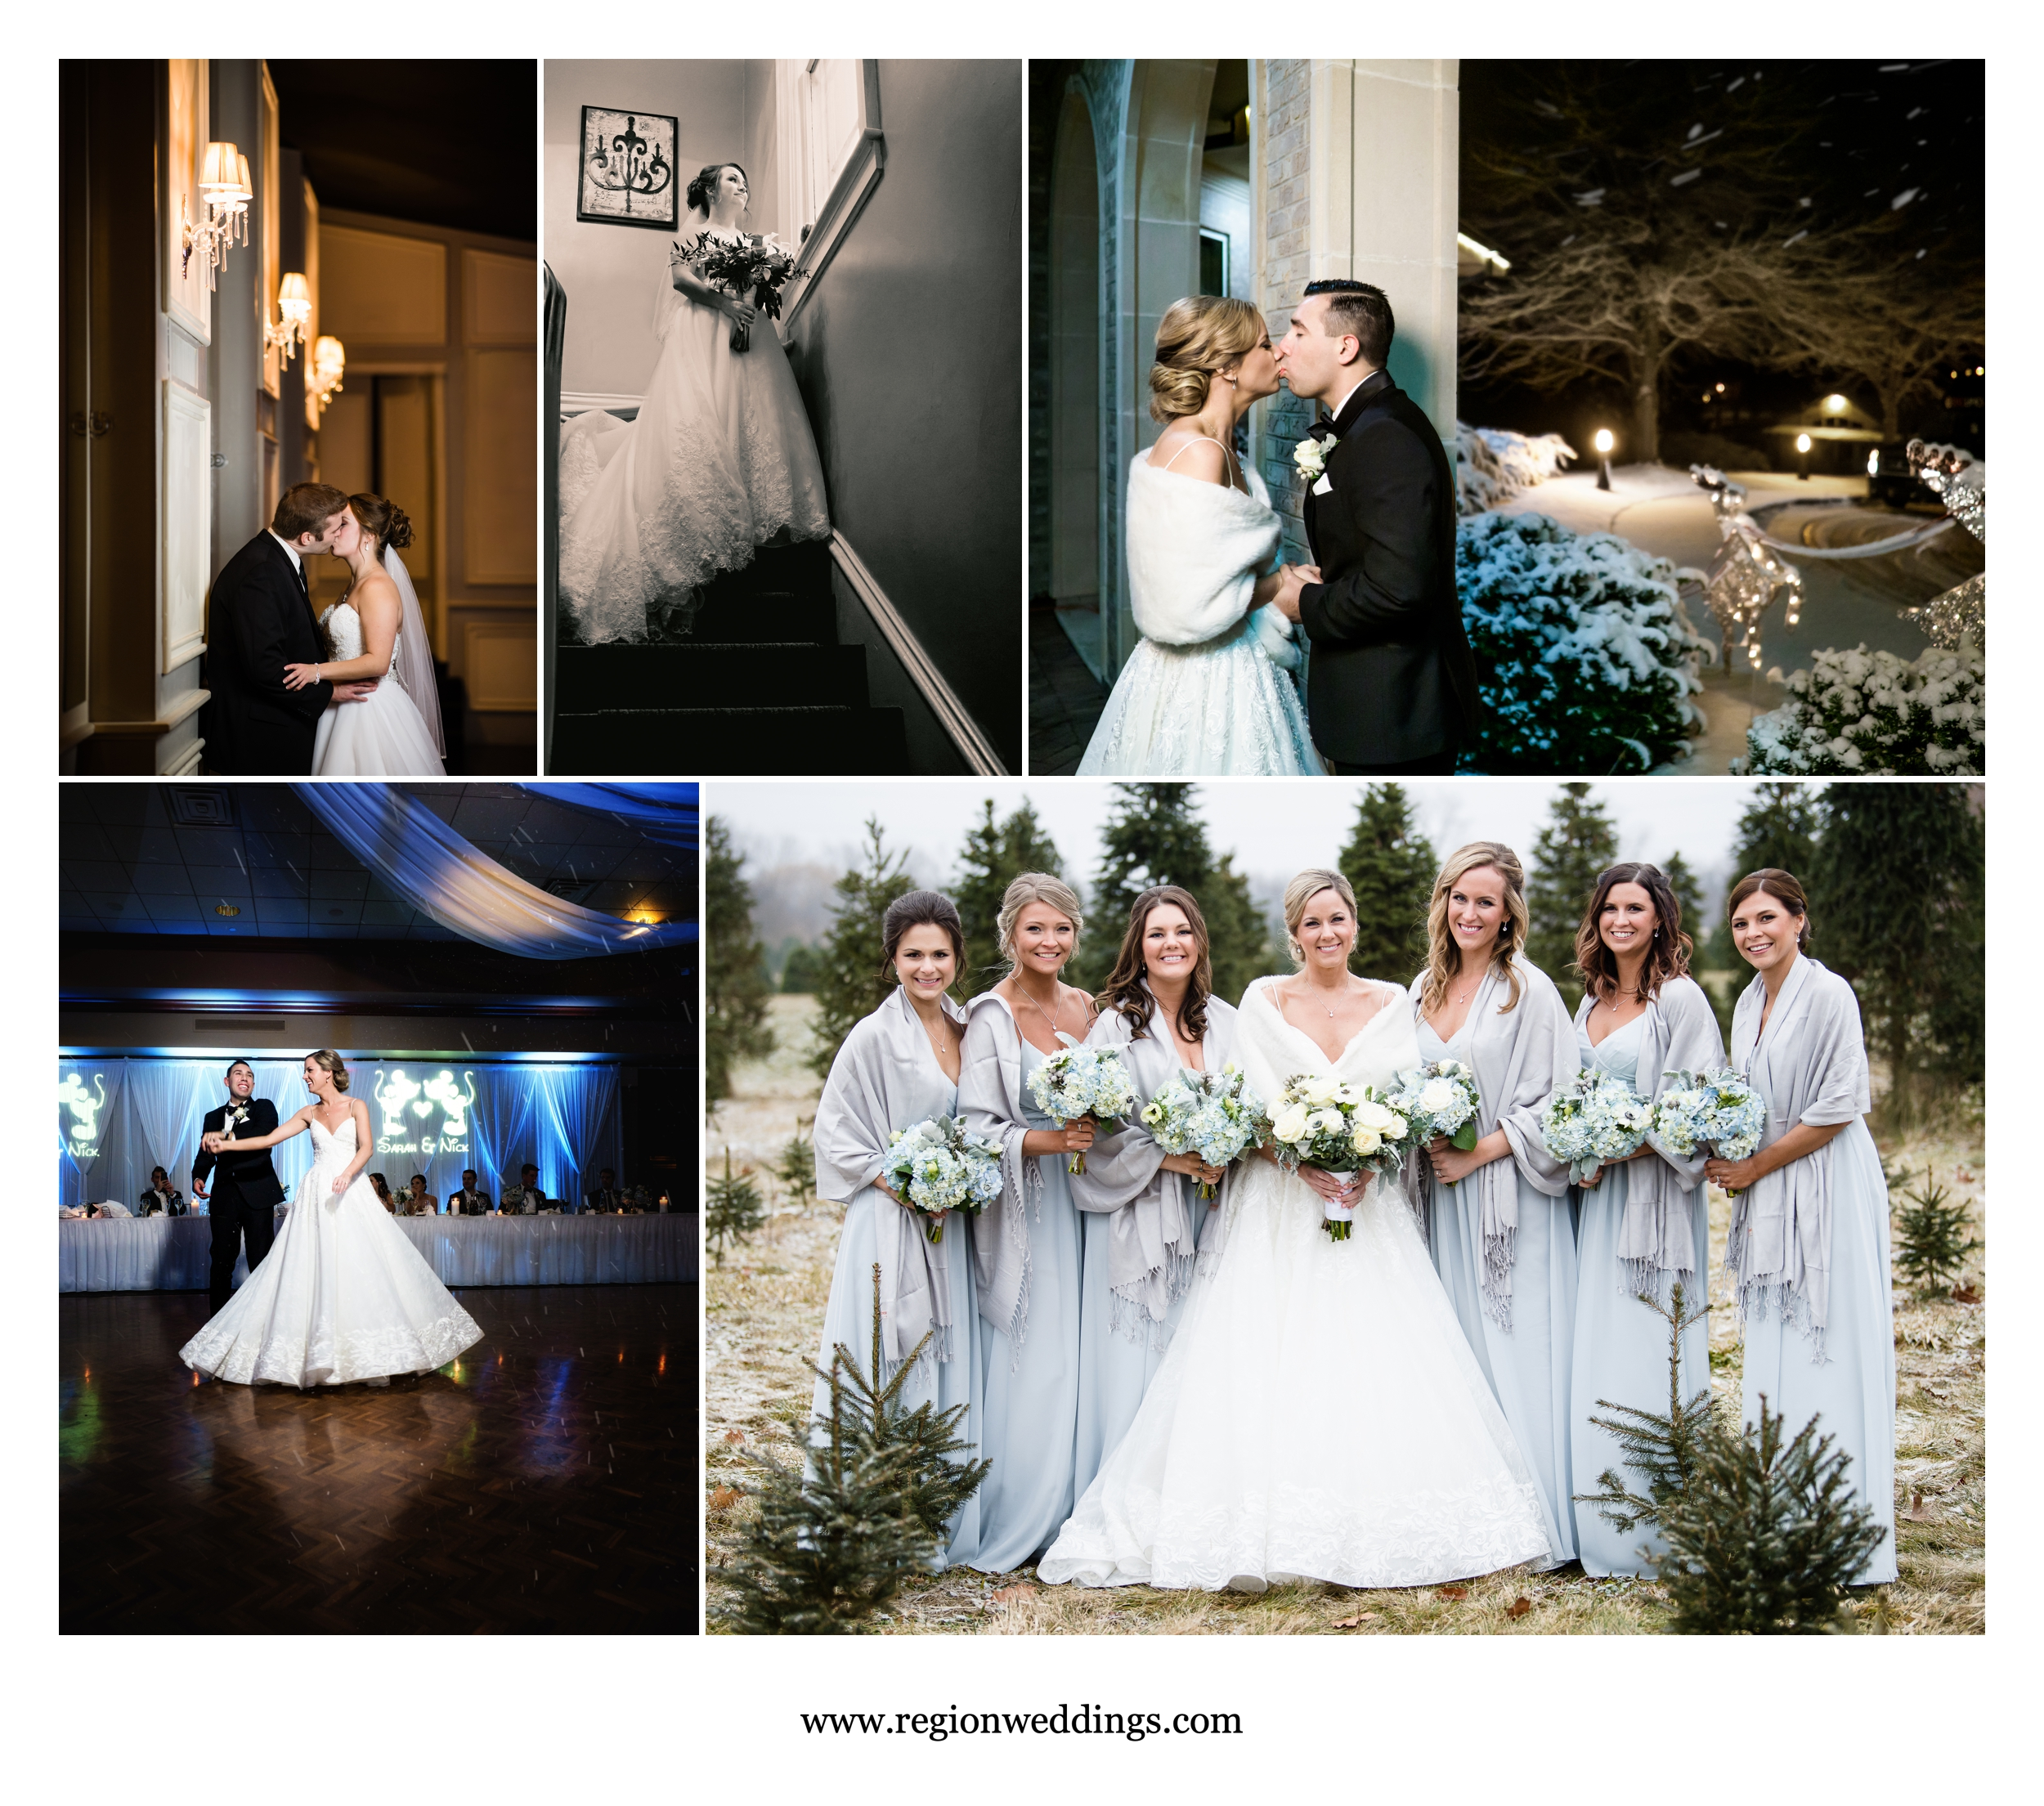 Winter weddings at Uptown Center and Sand Creek Country Club.